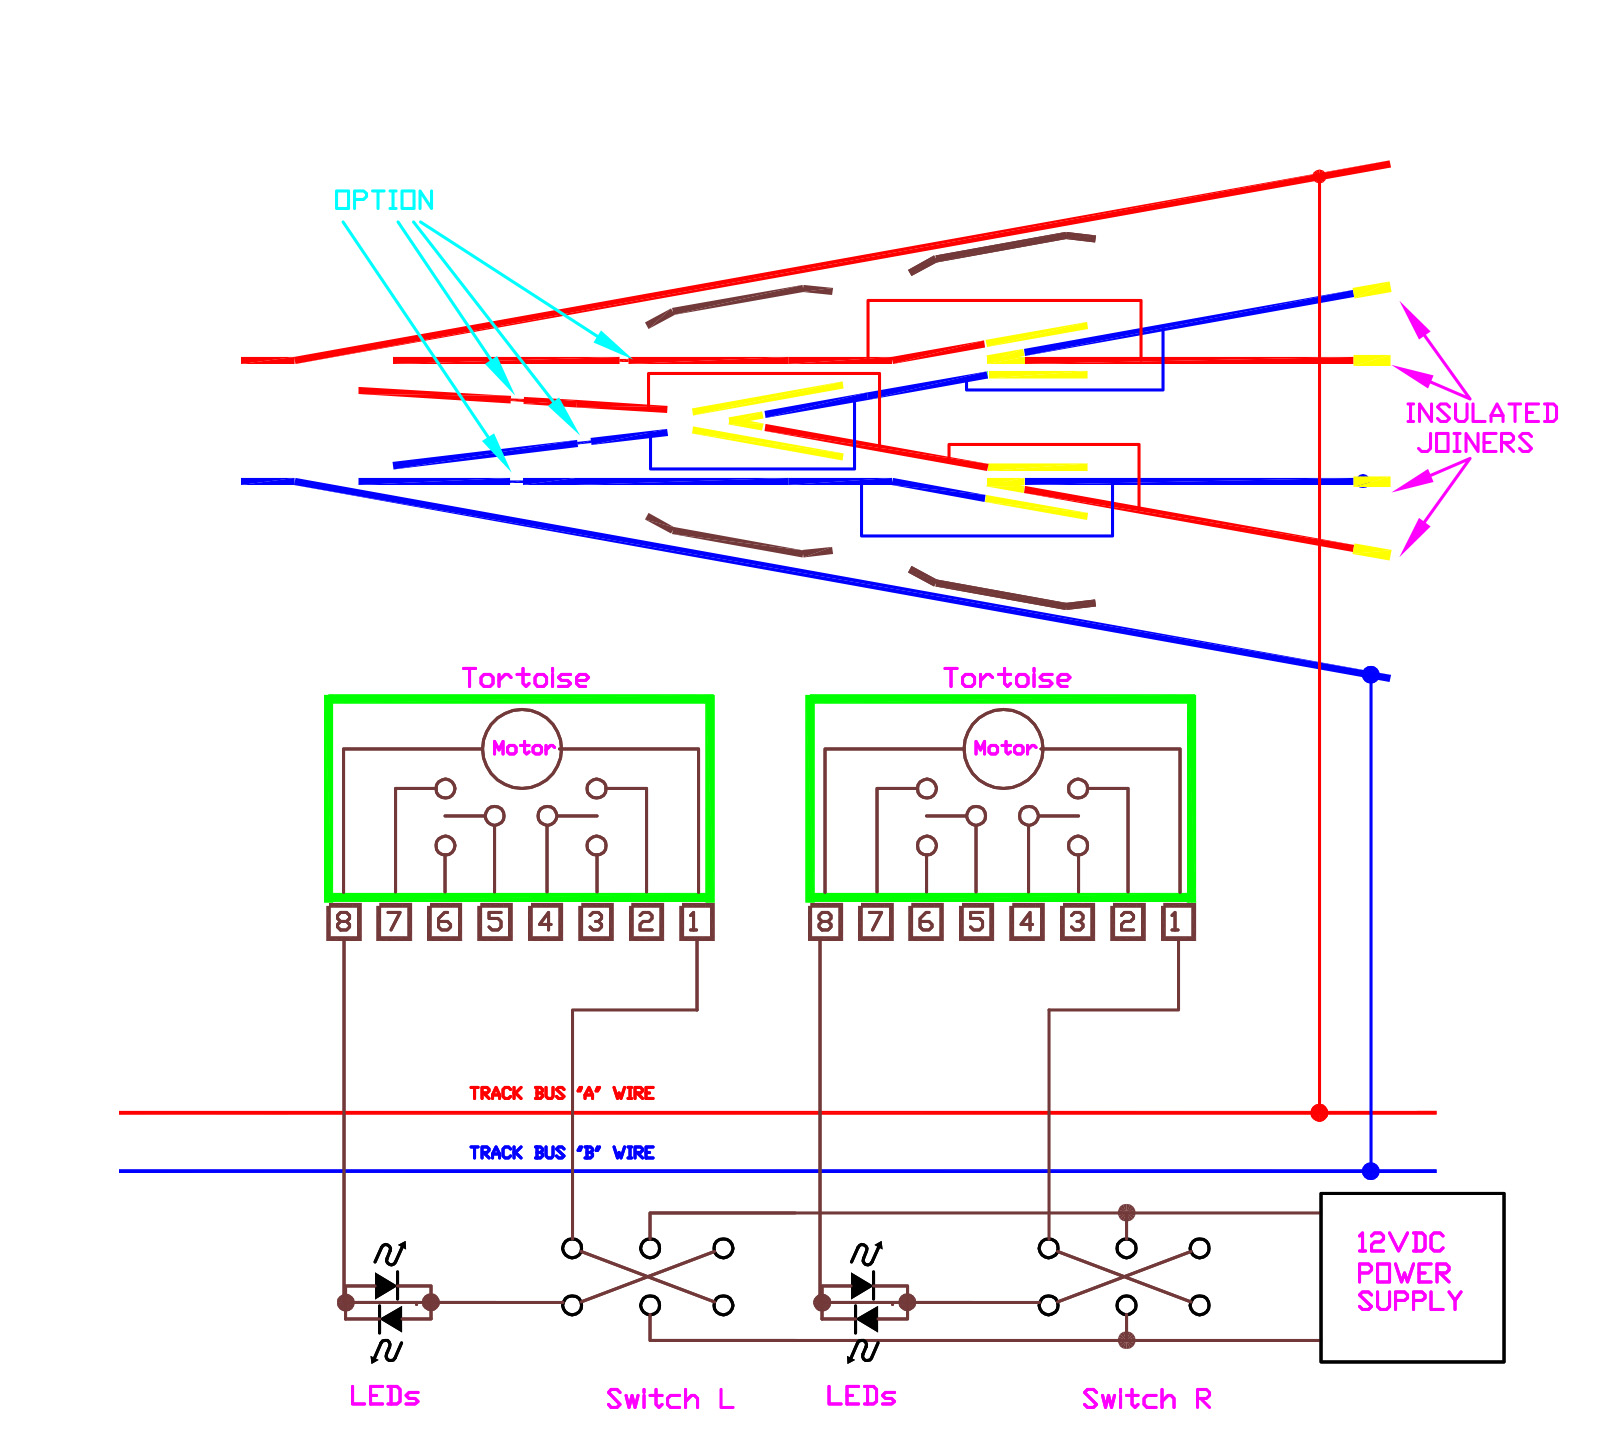 Wiring Diagram See My Wiring Diagram Below For An Idea Of How It Is